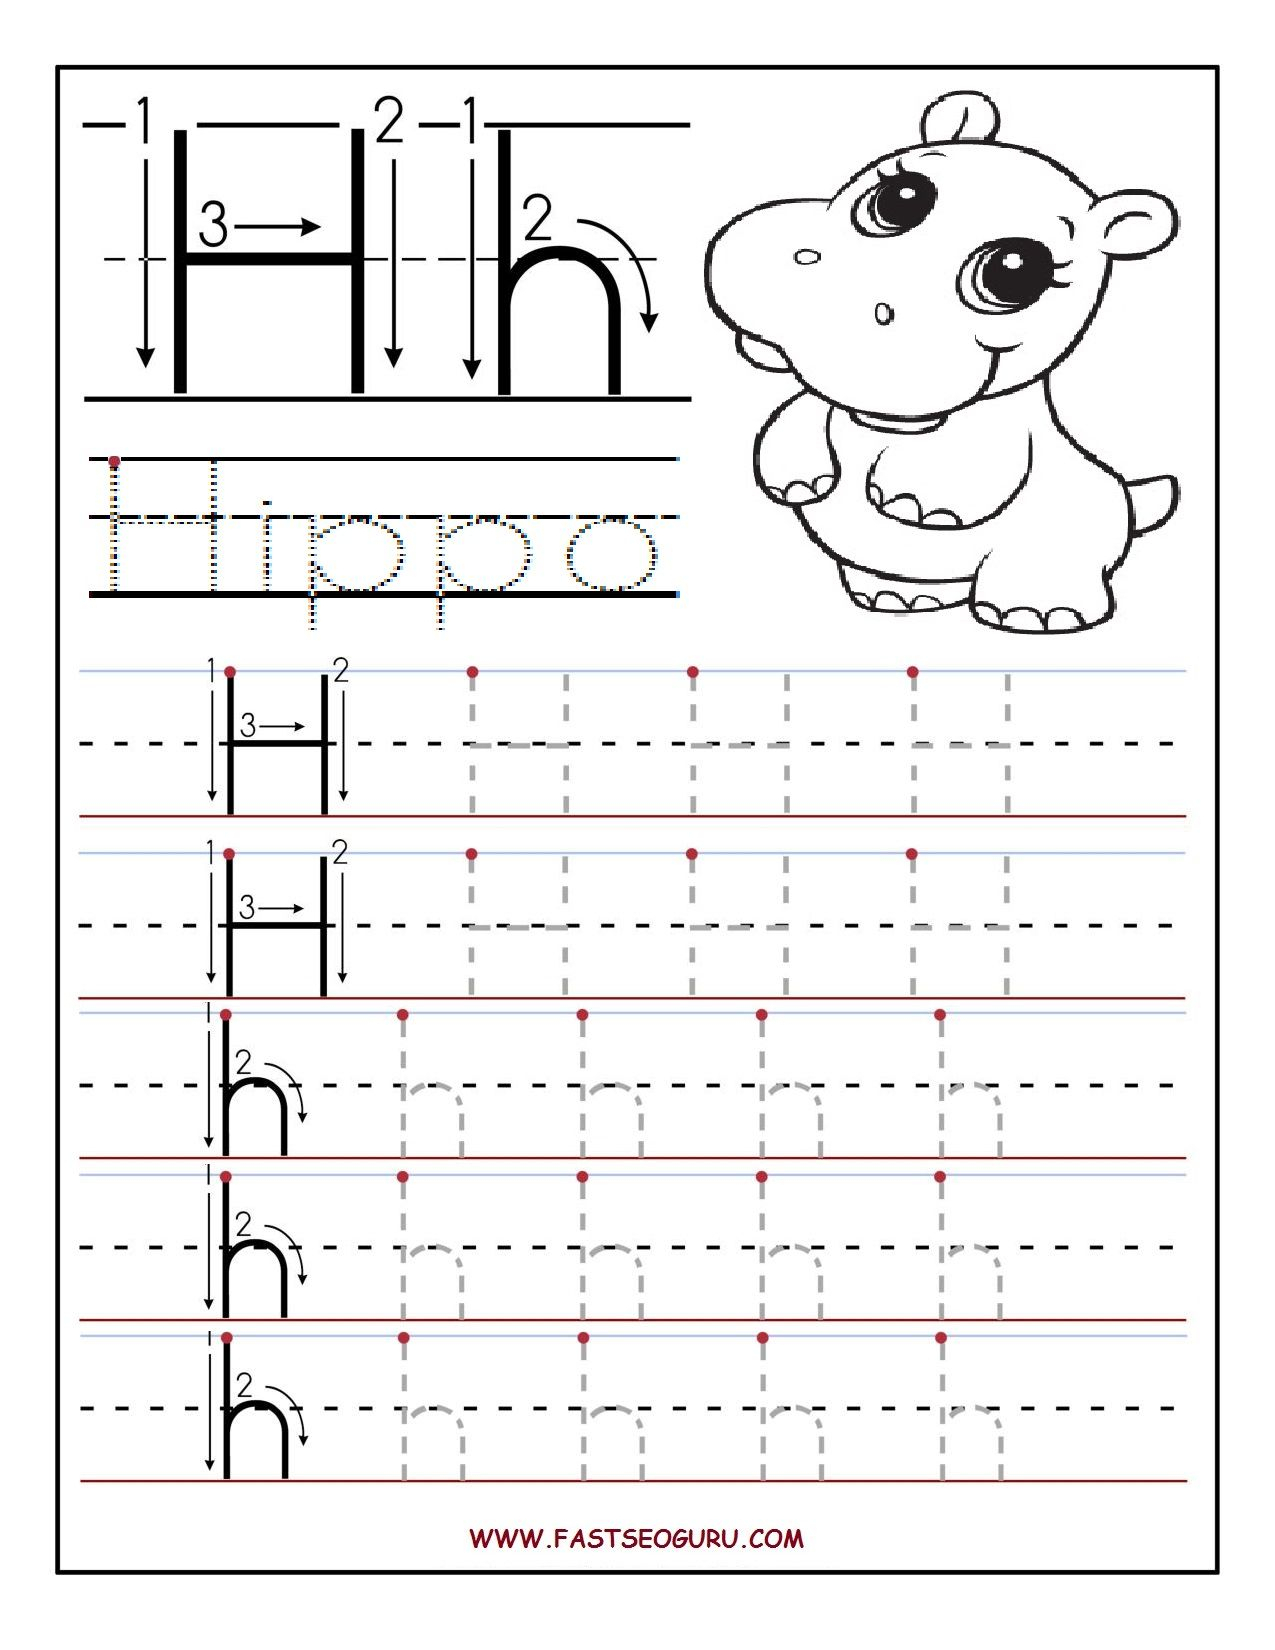 Printable Letter H Tracing Worksheets For Preschool for Letter H Worksheets For Pre K